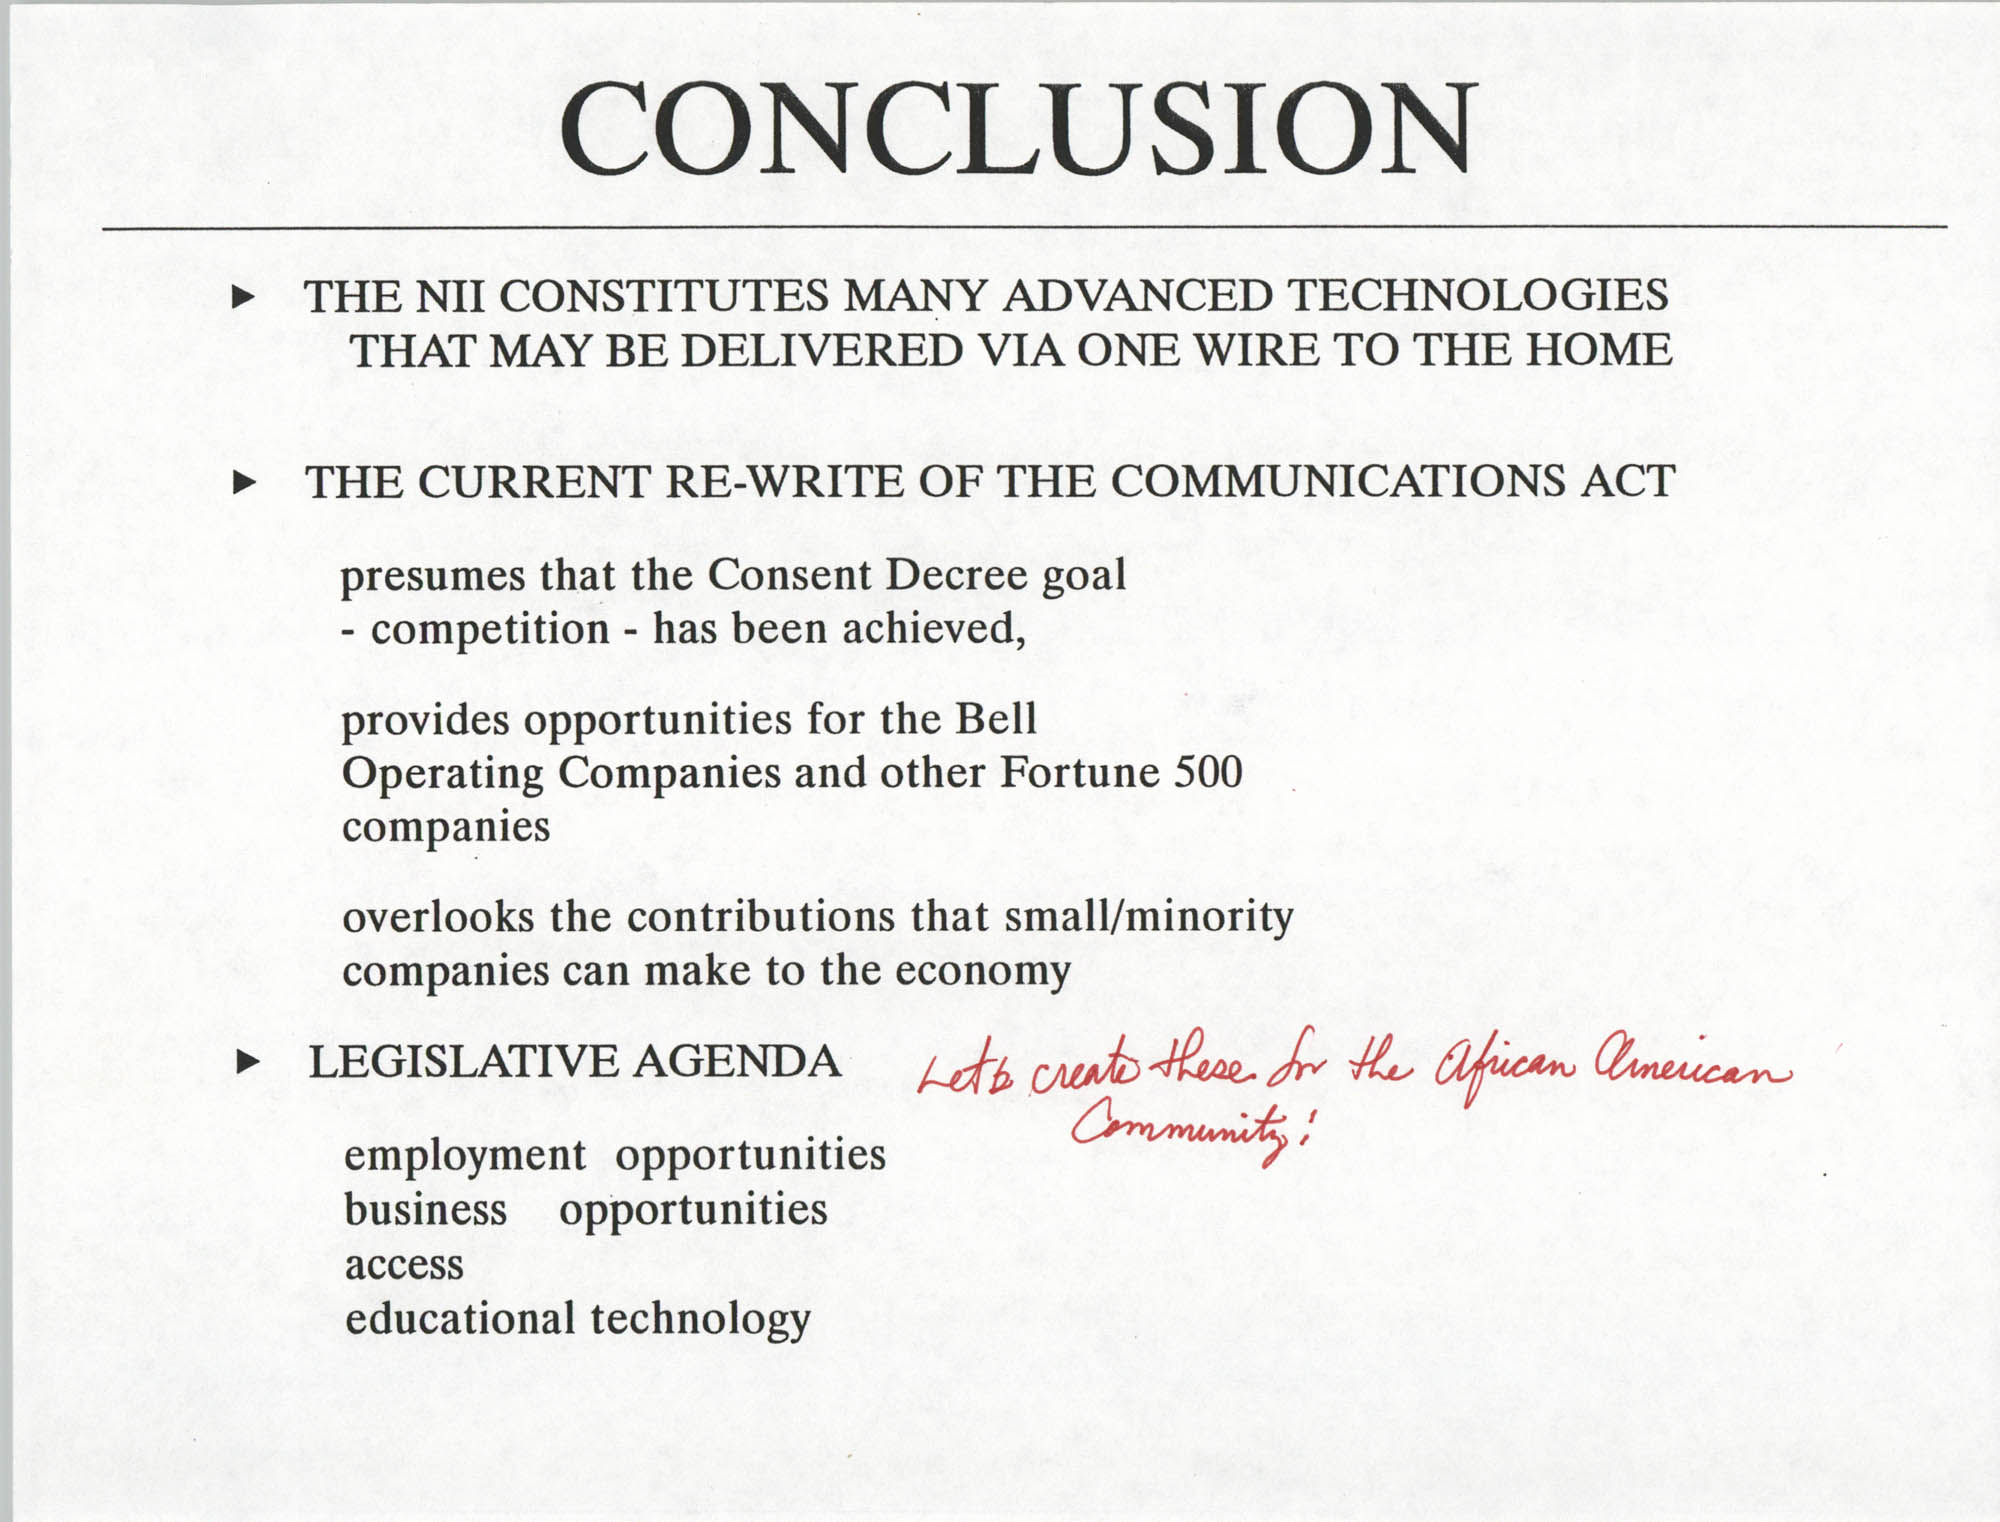 Developing an Agenda for the Information Superhighway, Anthony L. Pharr, May 20, 1994, Page 29